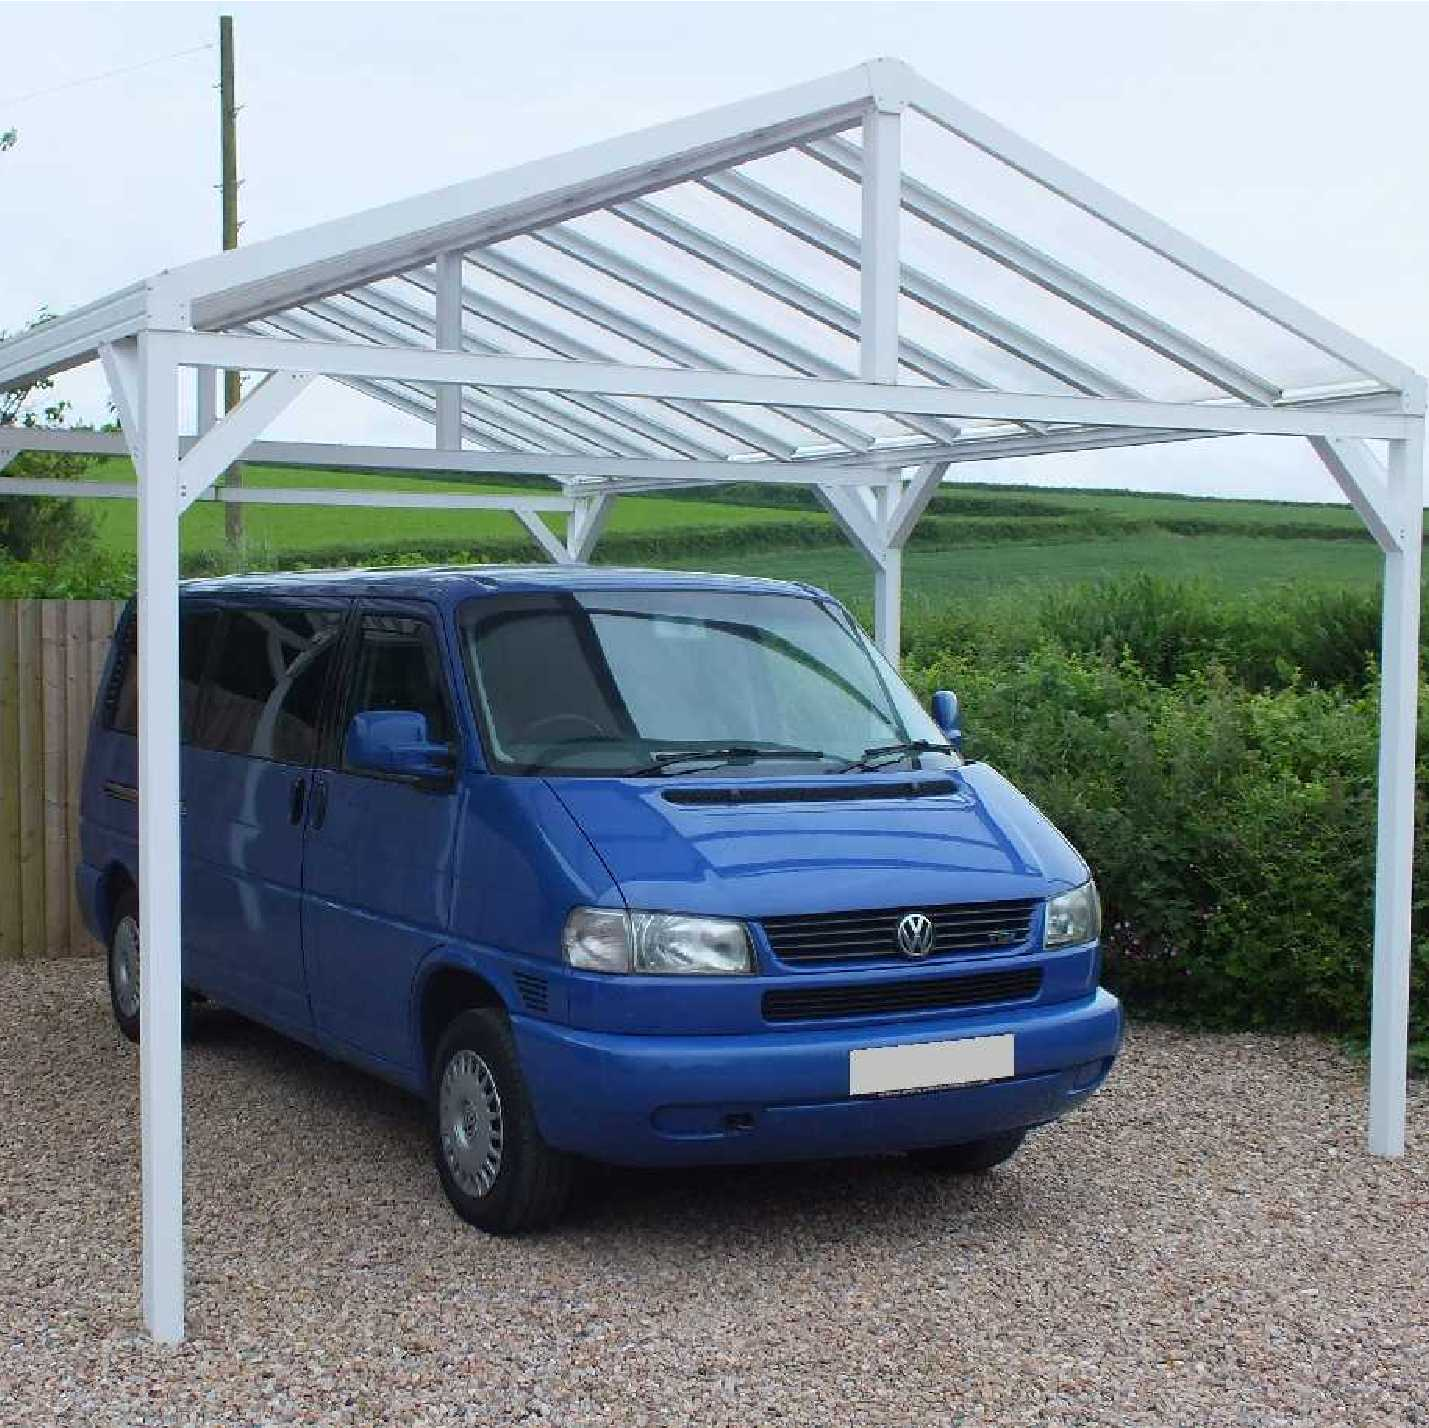 Omega Smart Free-Standing, Gable-Roof (type 1) Canopy with 16mm Polycarbonate Glazing - 4.2m (W) x 4.0m (P), (6) Supporting Posts